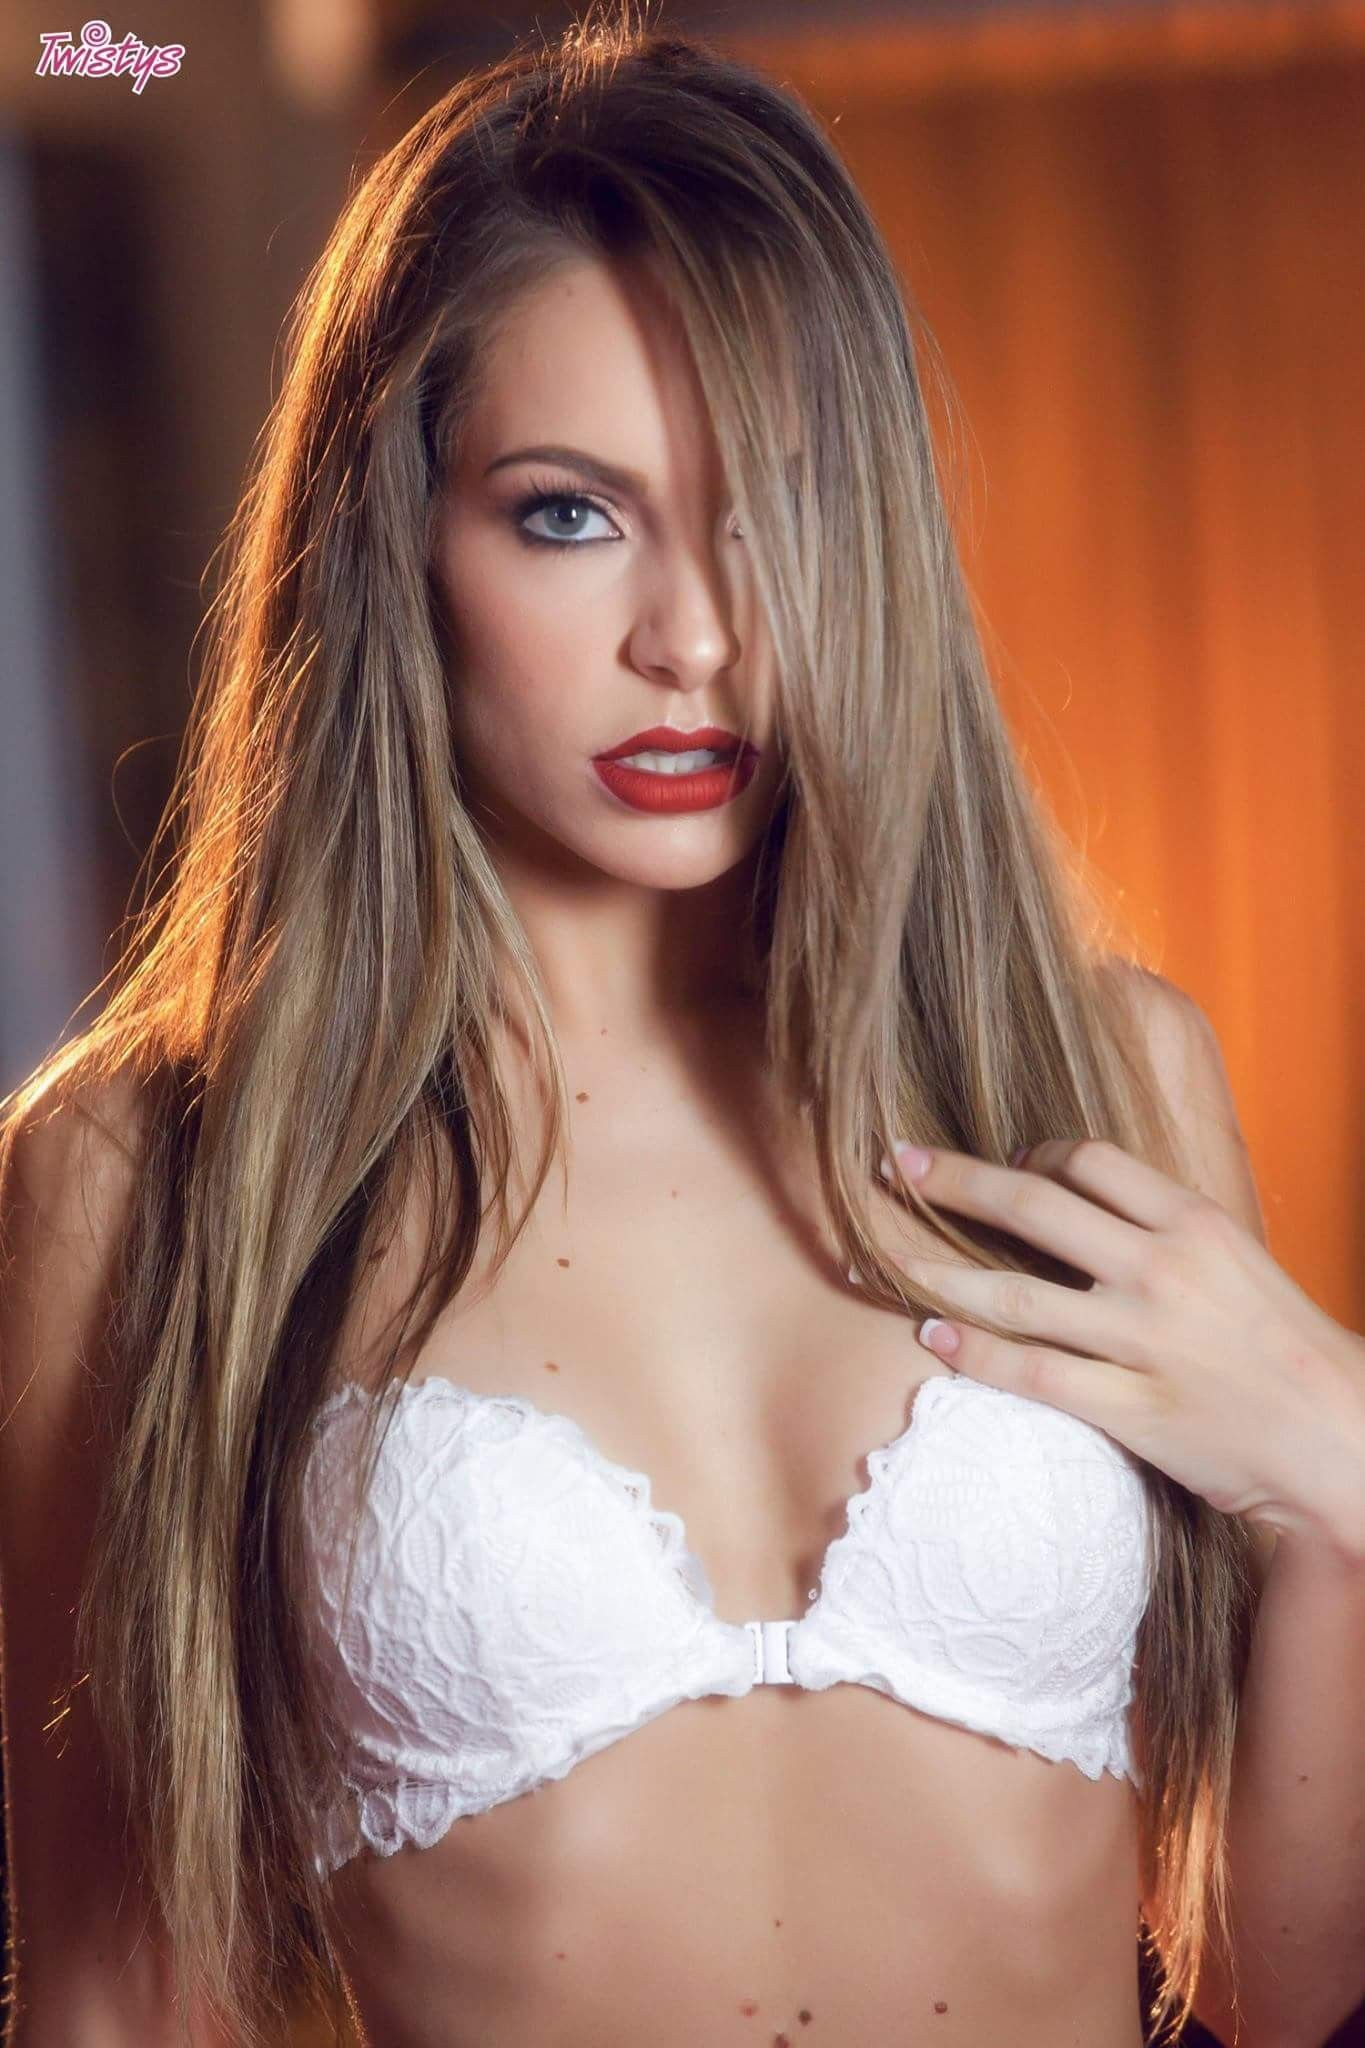 Kimmy granger maid torrent